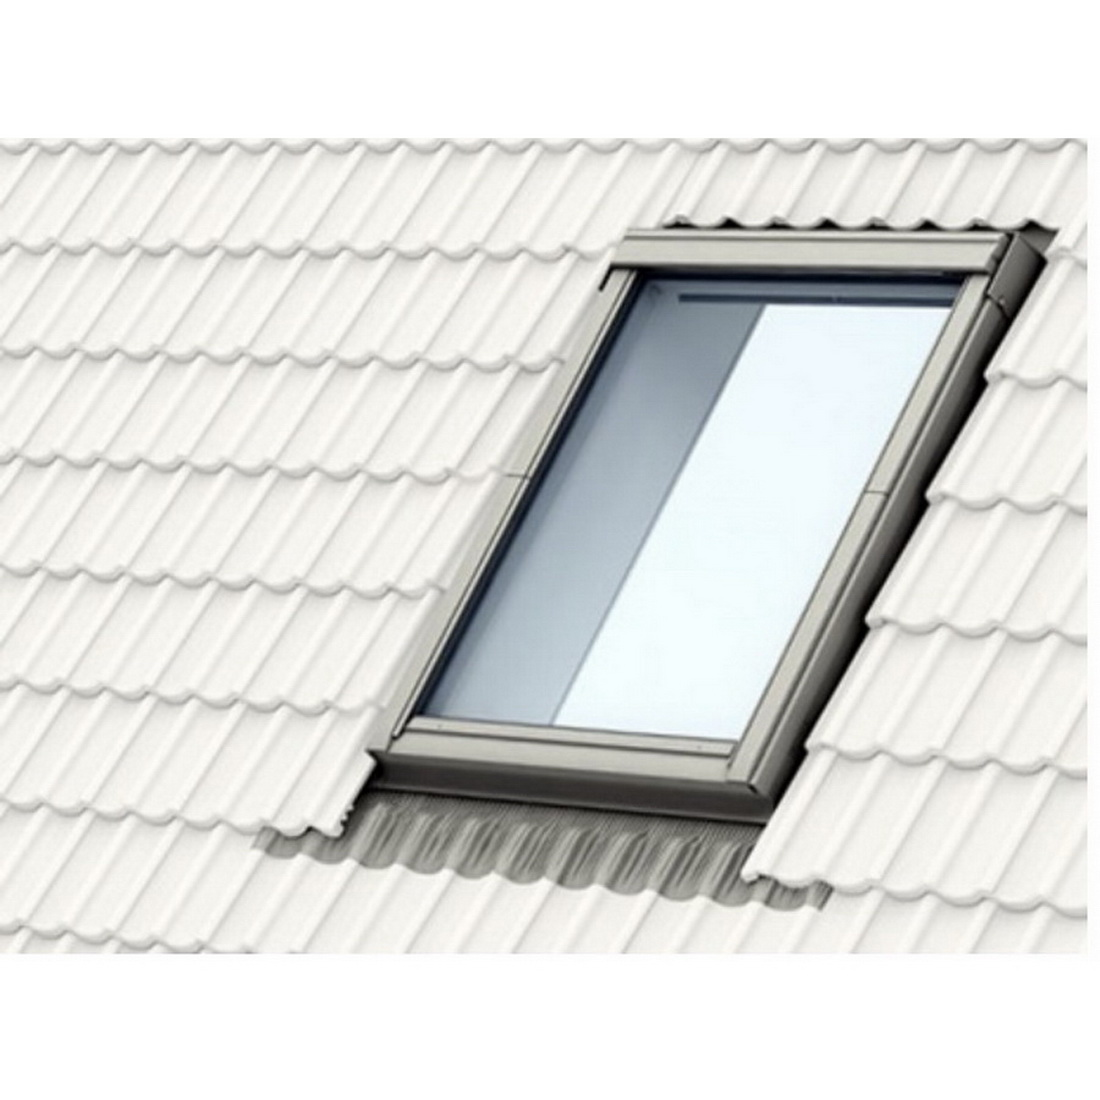 Velux EDW Flashing Kit For Metal/Tile Roofing Material EDW M04 0000A